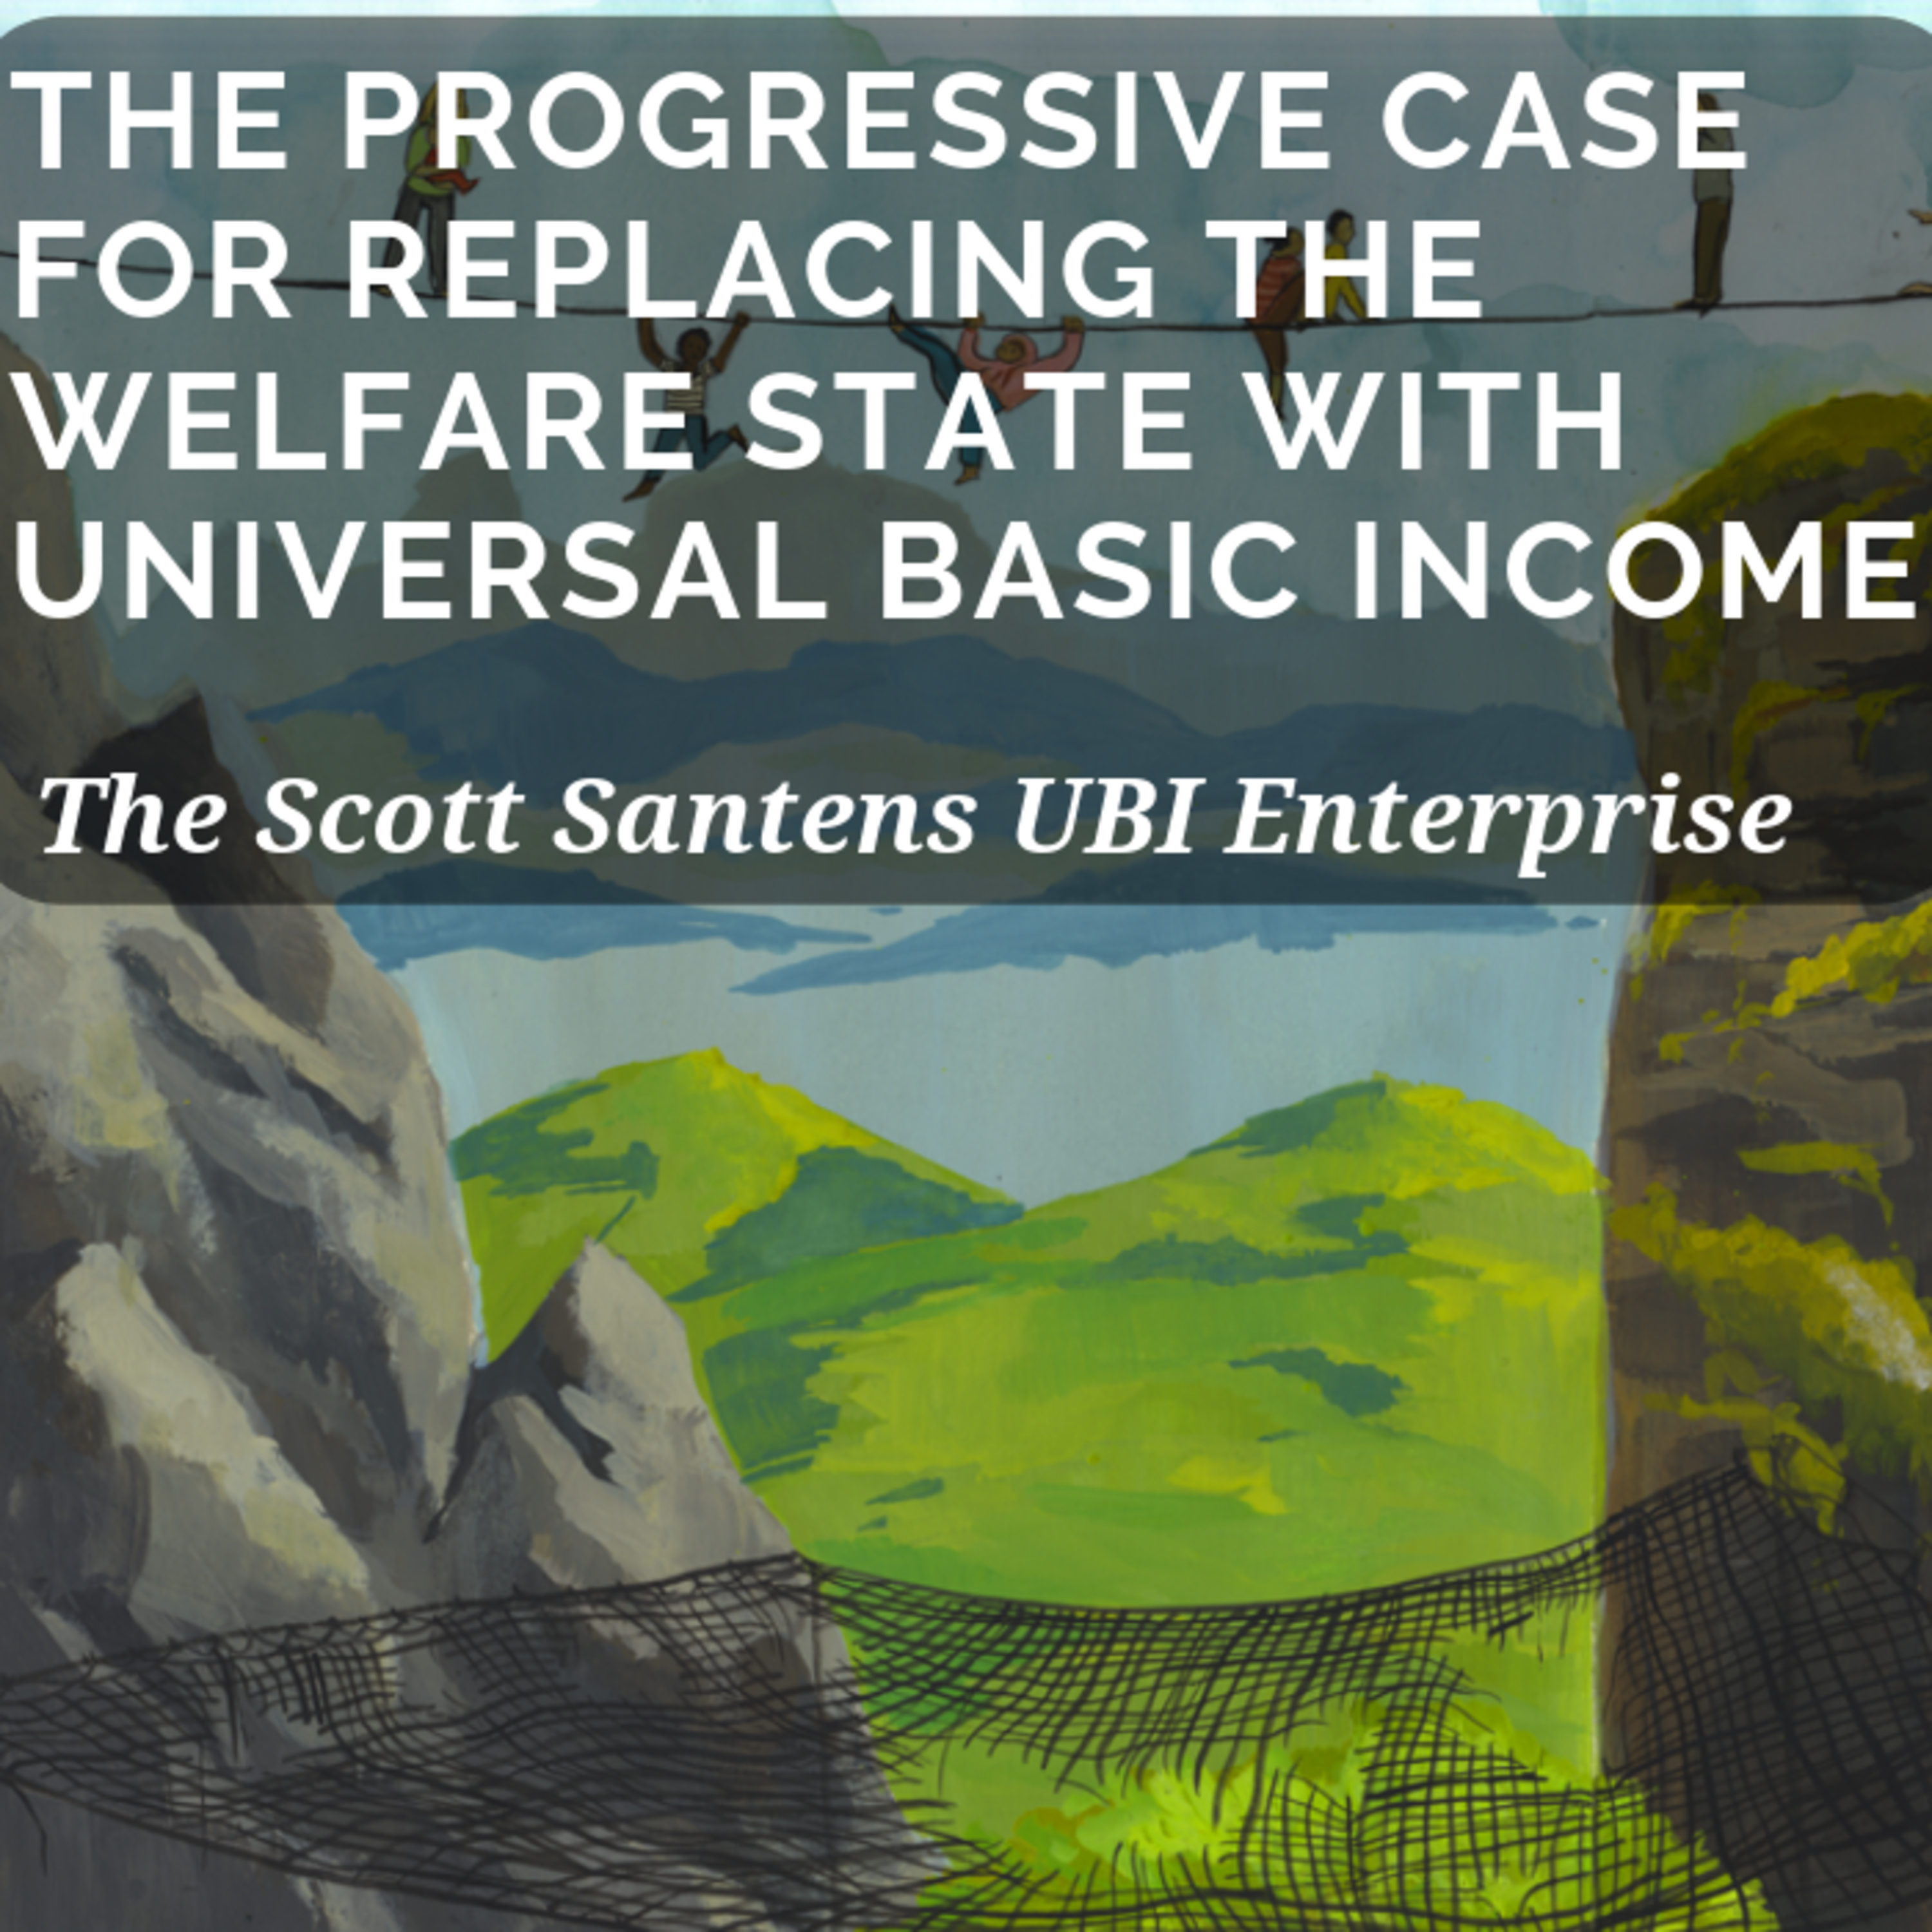 The Progressive Case for Replacing the Welfare State with Universal Basic Income